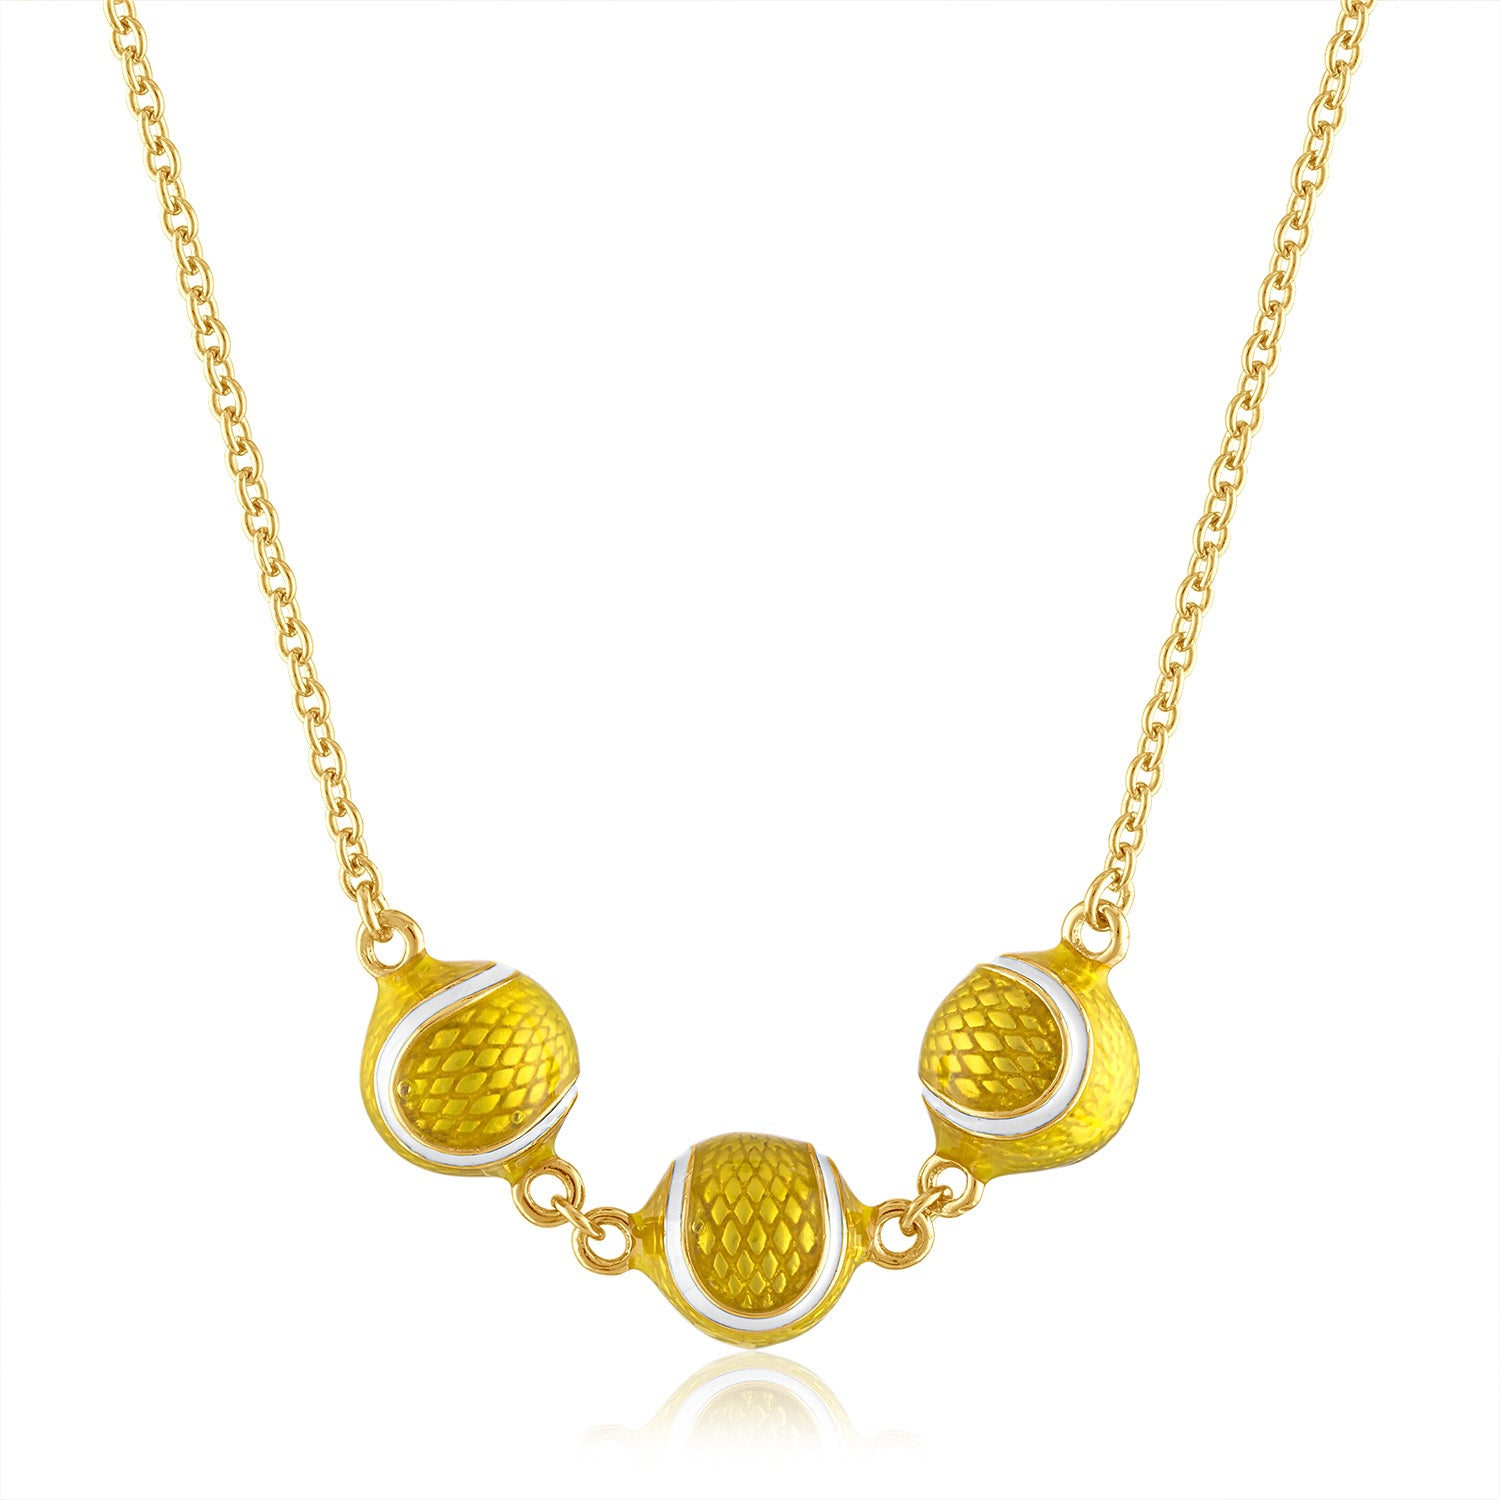 Enamel Three Tennis Ball Necklace